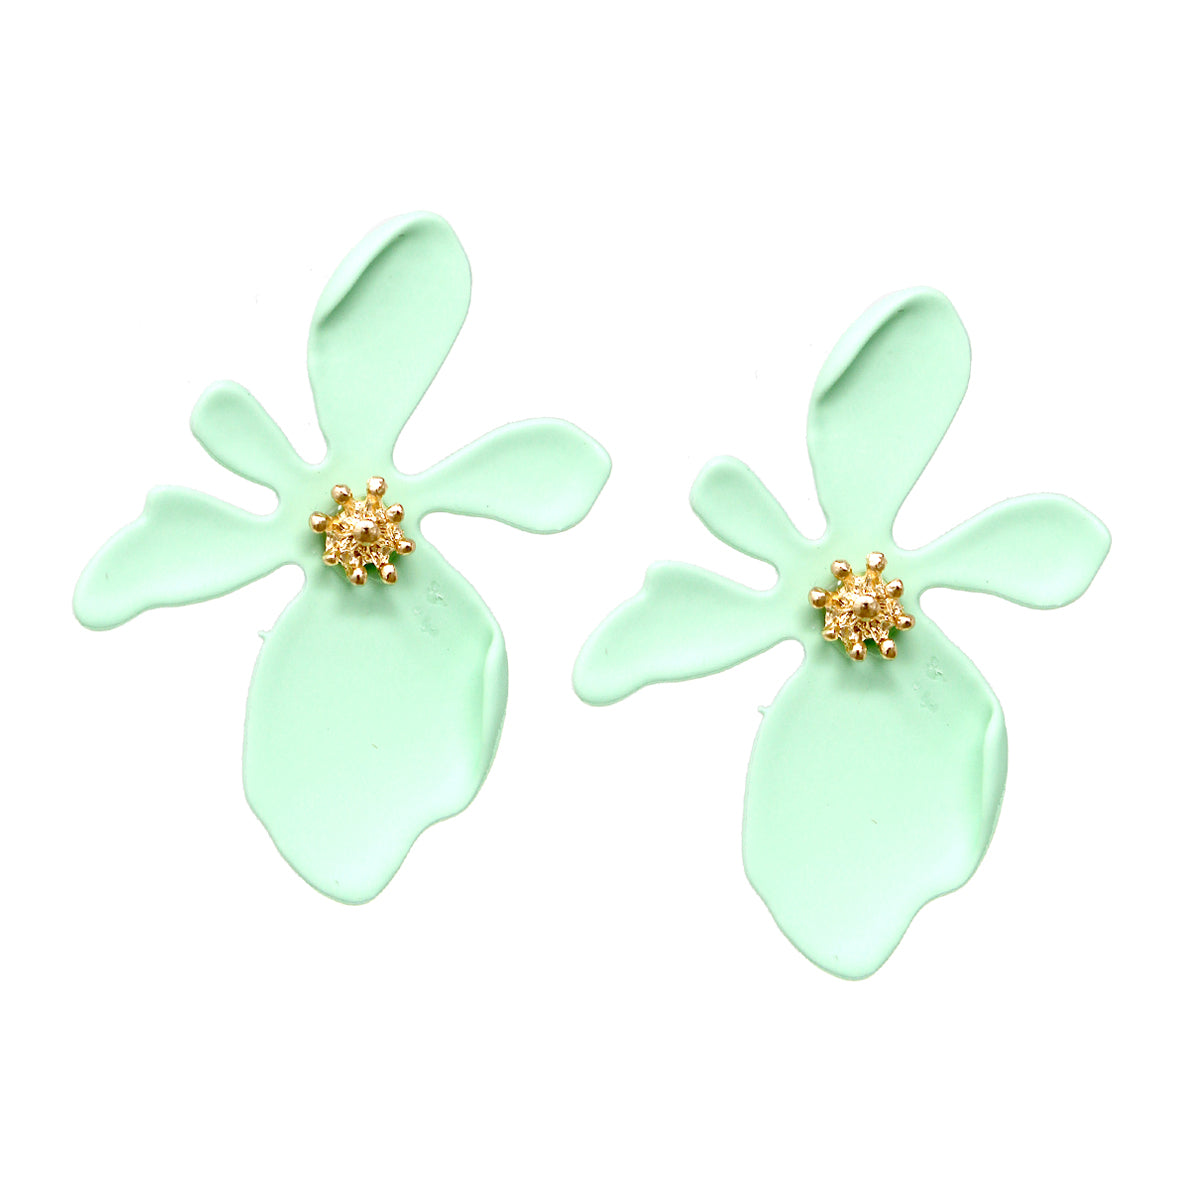 Rubber Coated Orchid Flower Stud Earrings